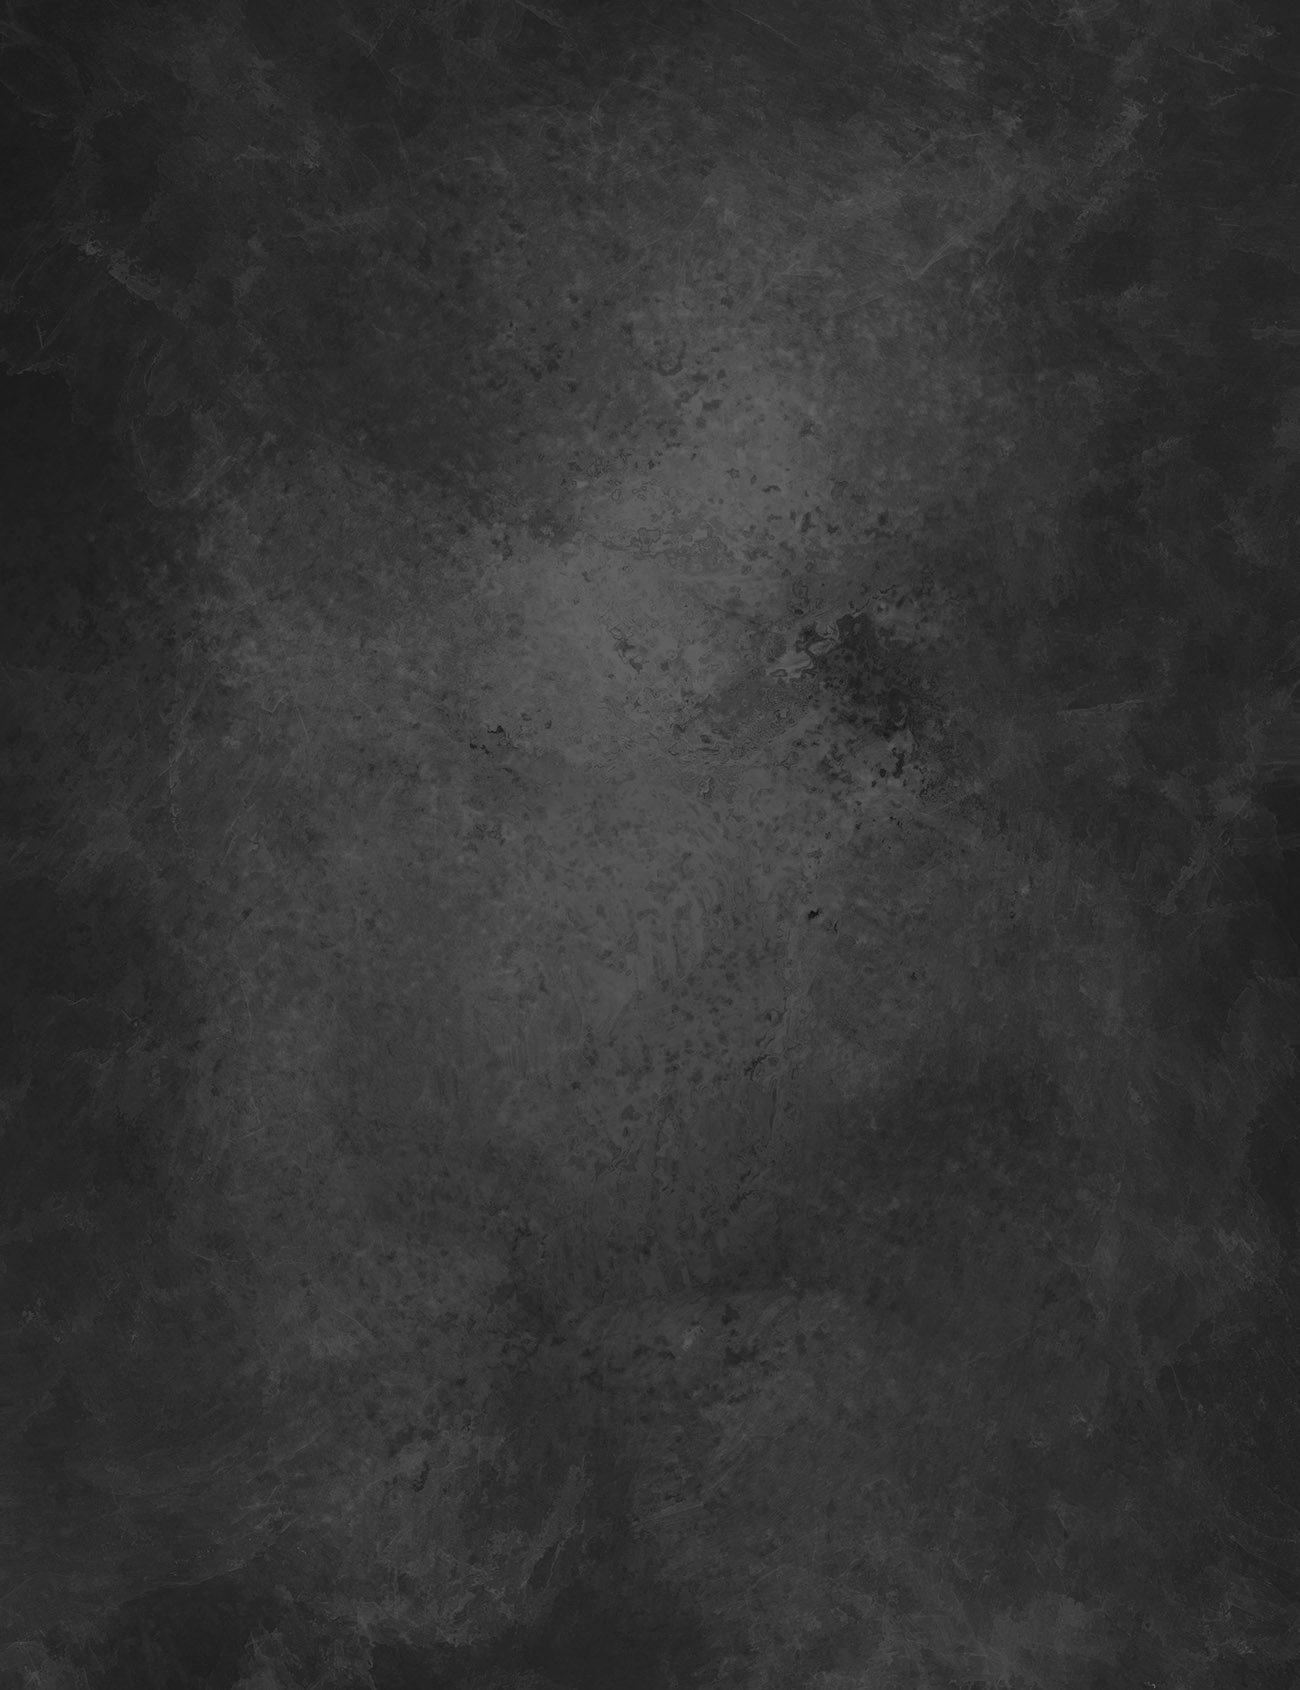 Black marble texture Mercury Dark Background With Marble Texture Backdrop For Photography Shopbackdrop Dark Background With Marble Texture Backdrop For Photography